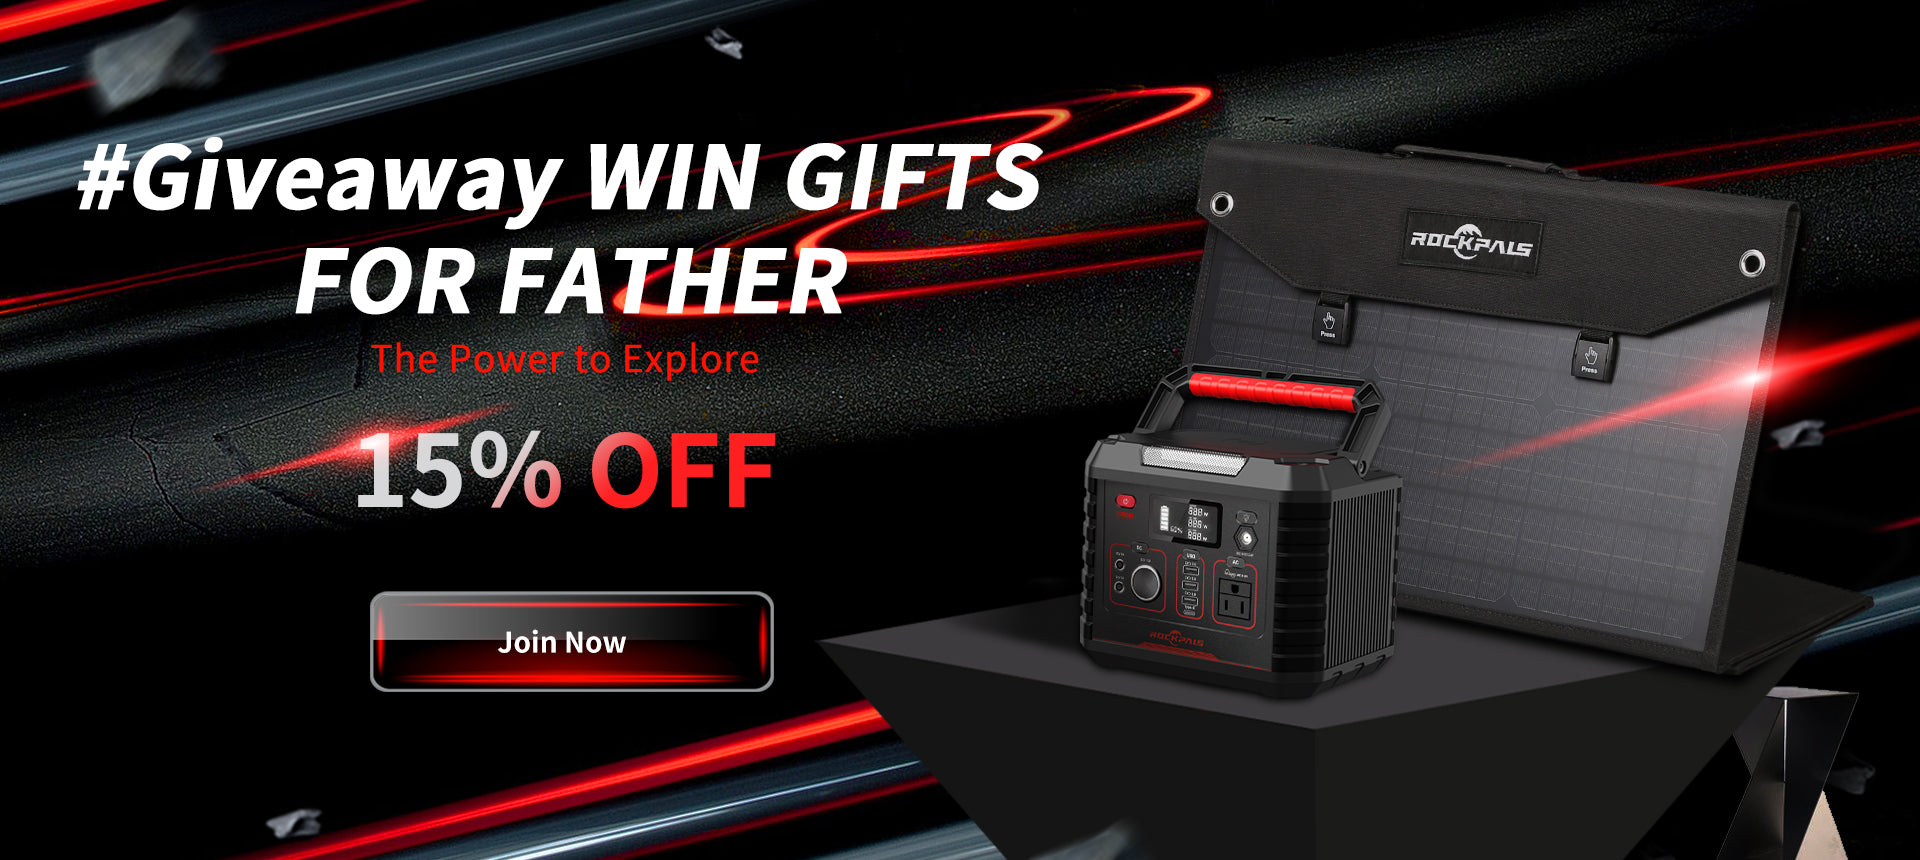 father's day sales